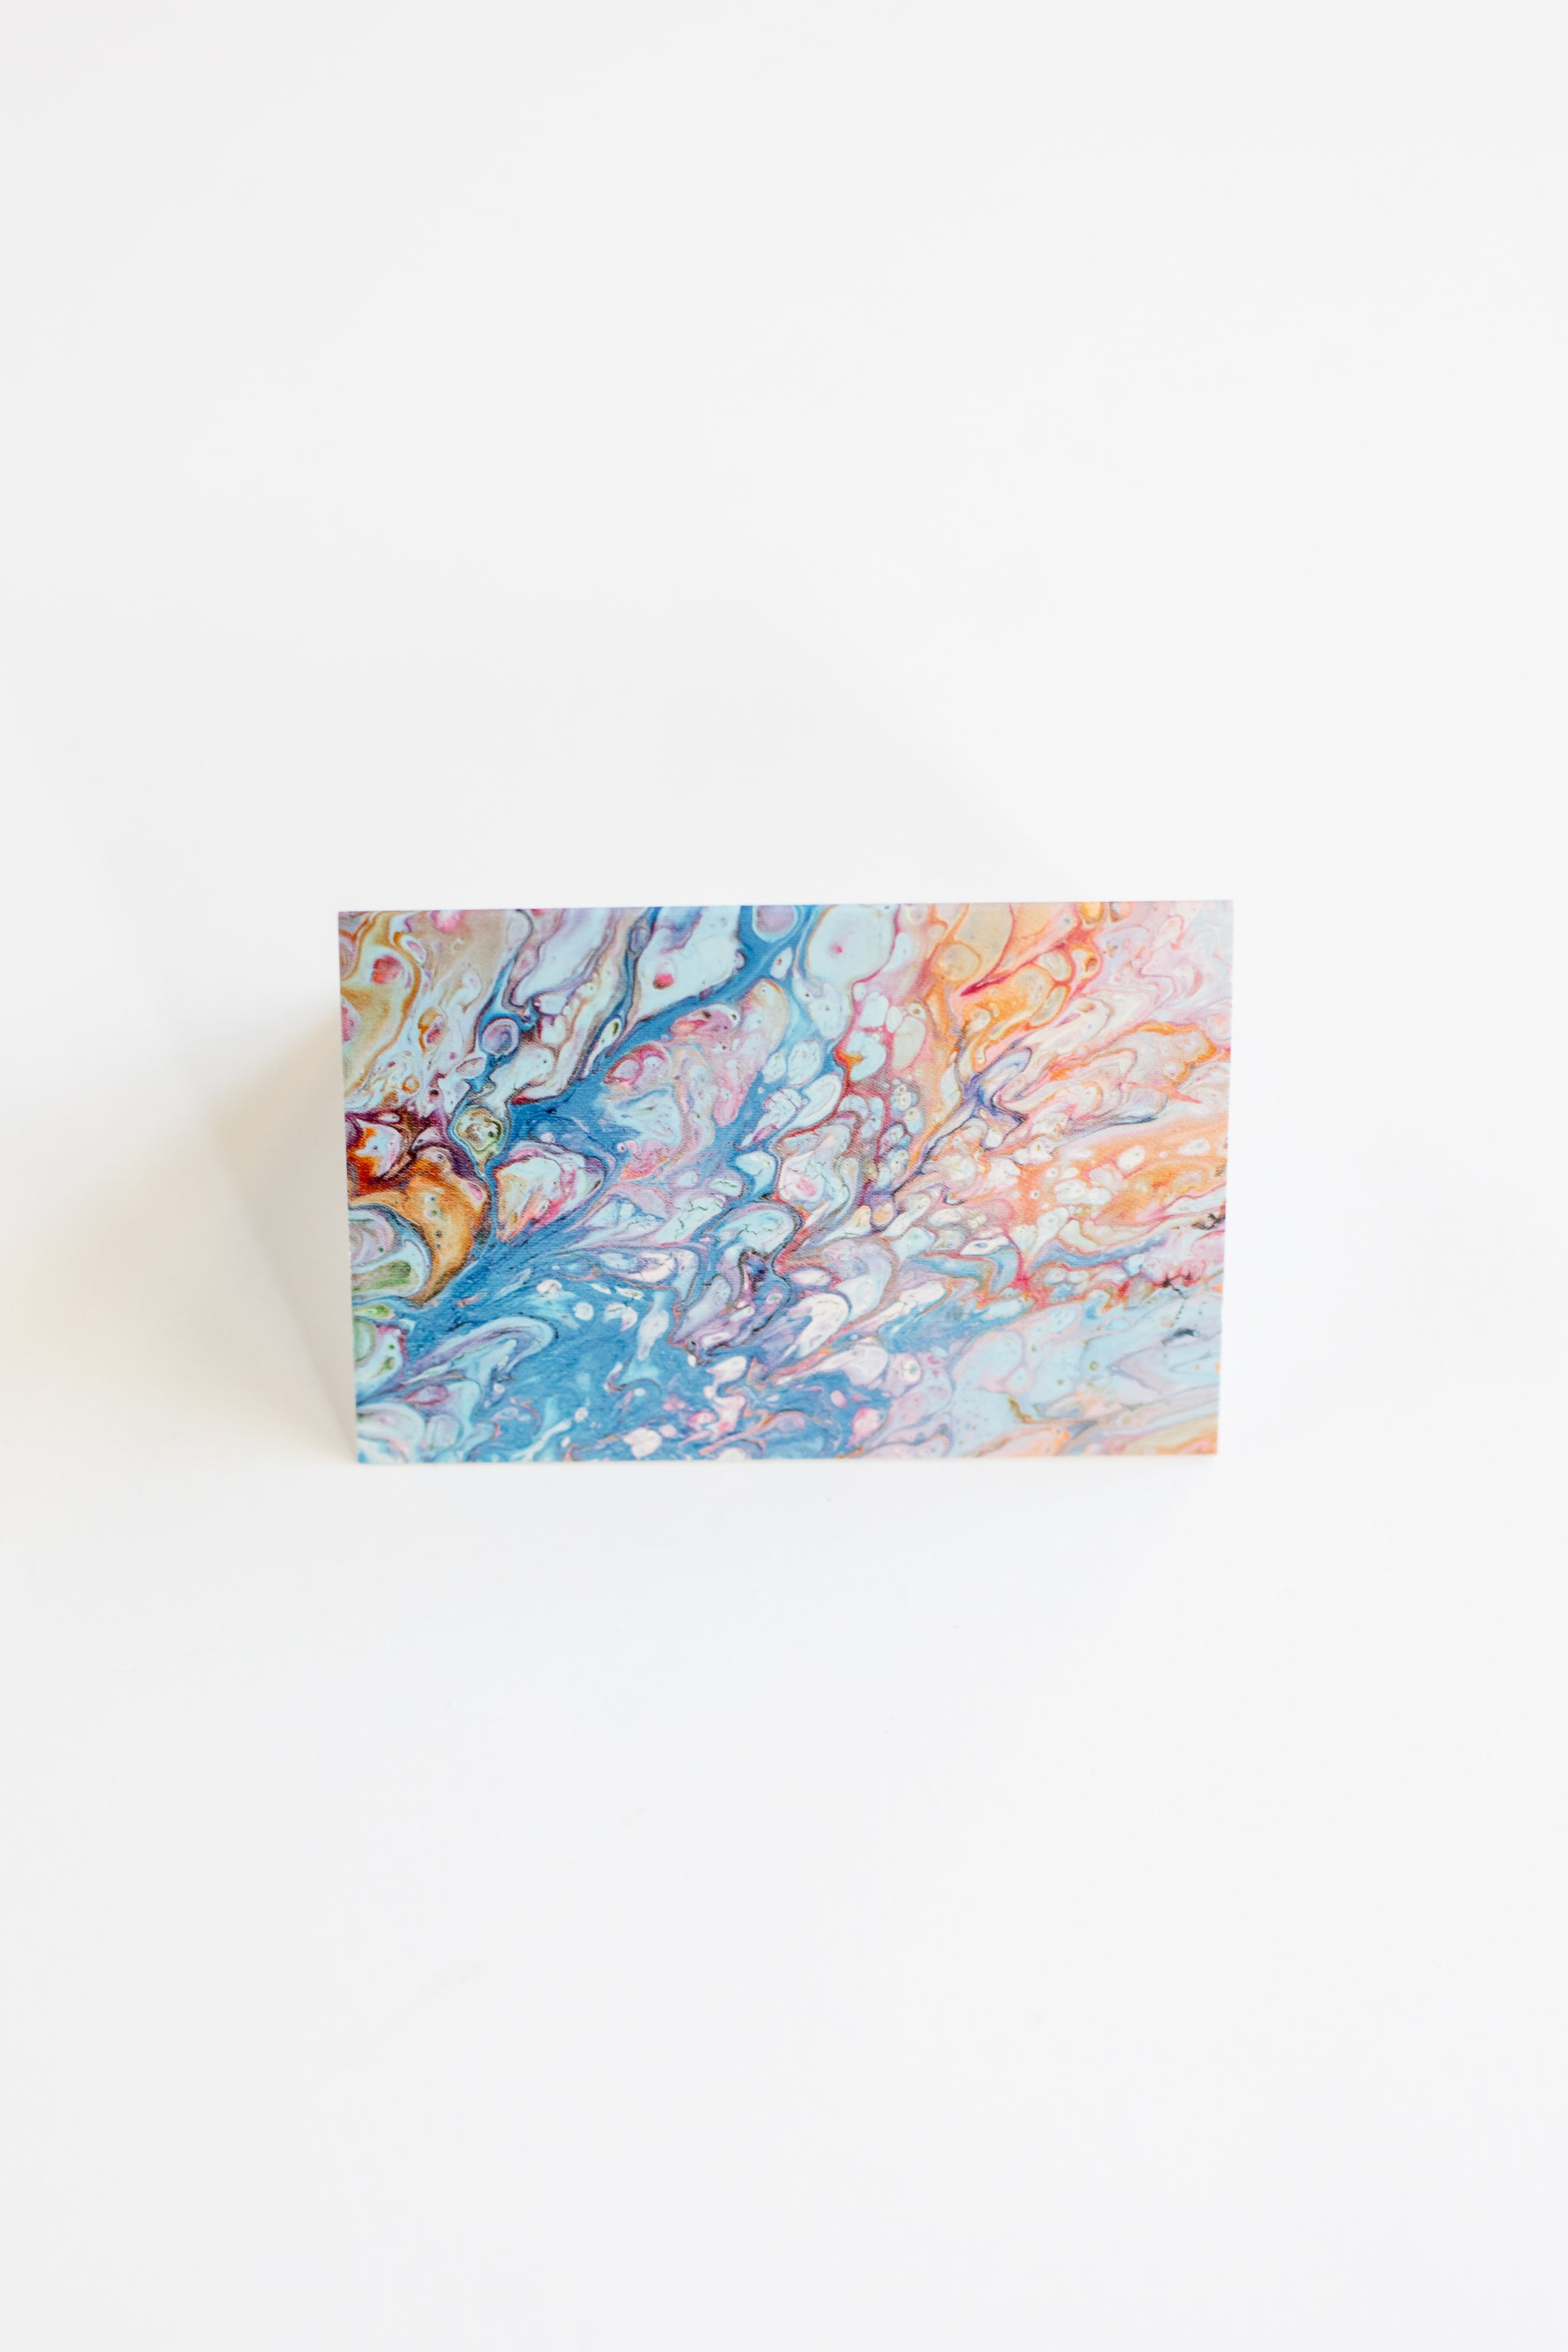 Sanaa Marble Mini Card Set | 20 Mini Cards + Envelopes Stationery - Fair Trade - Mercy House Global